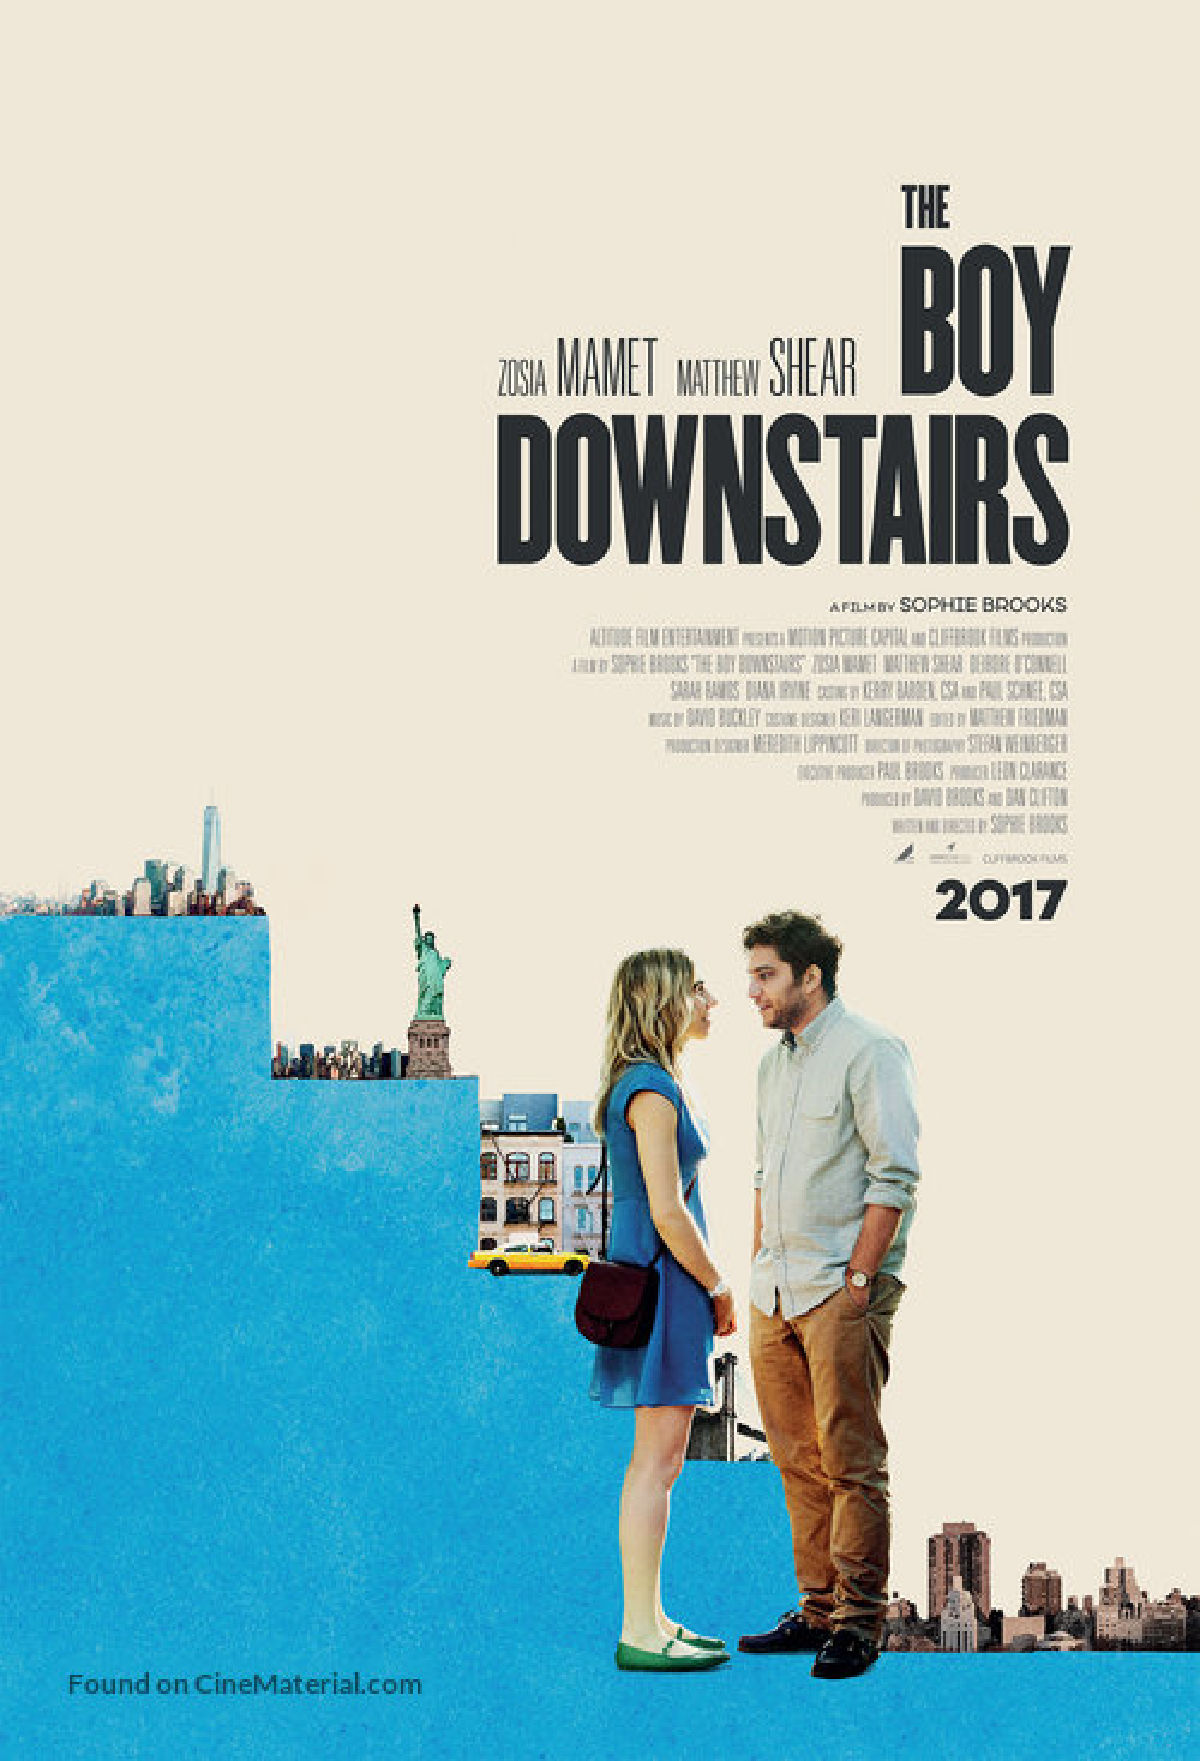 'The Boy Downstairs' movie poster